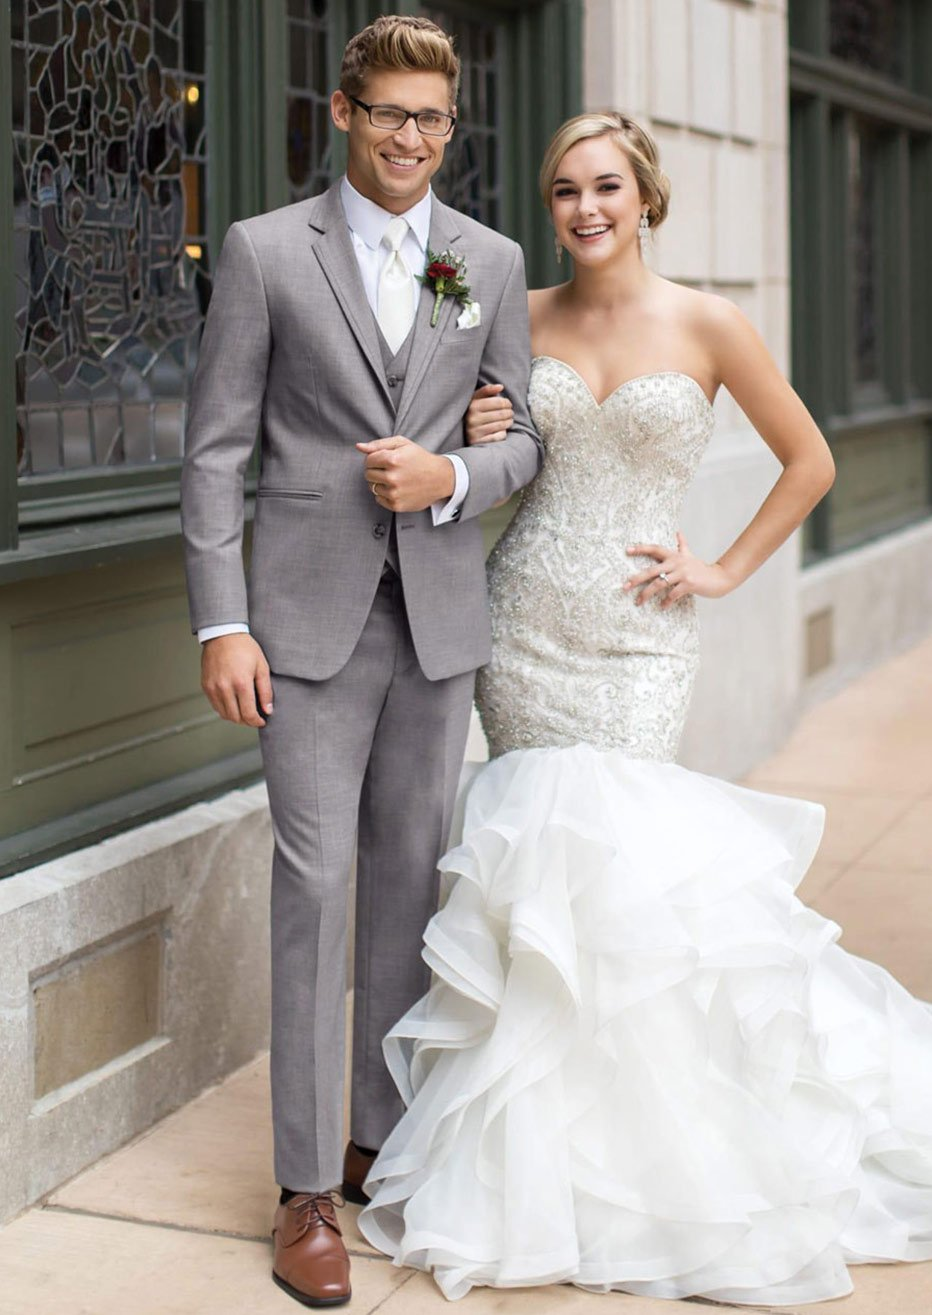 Tux shop tuxedo rentals suit rentals the gentlemens tux club weddings junglespirit Choice Image